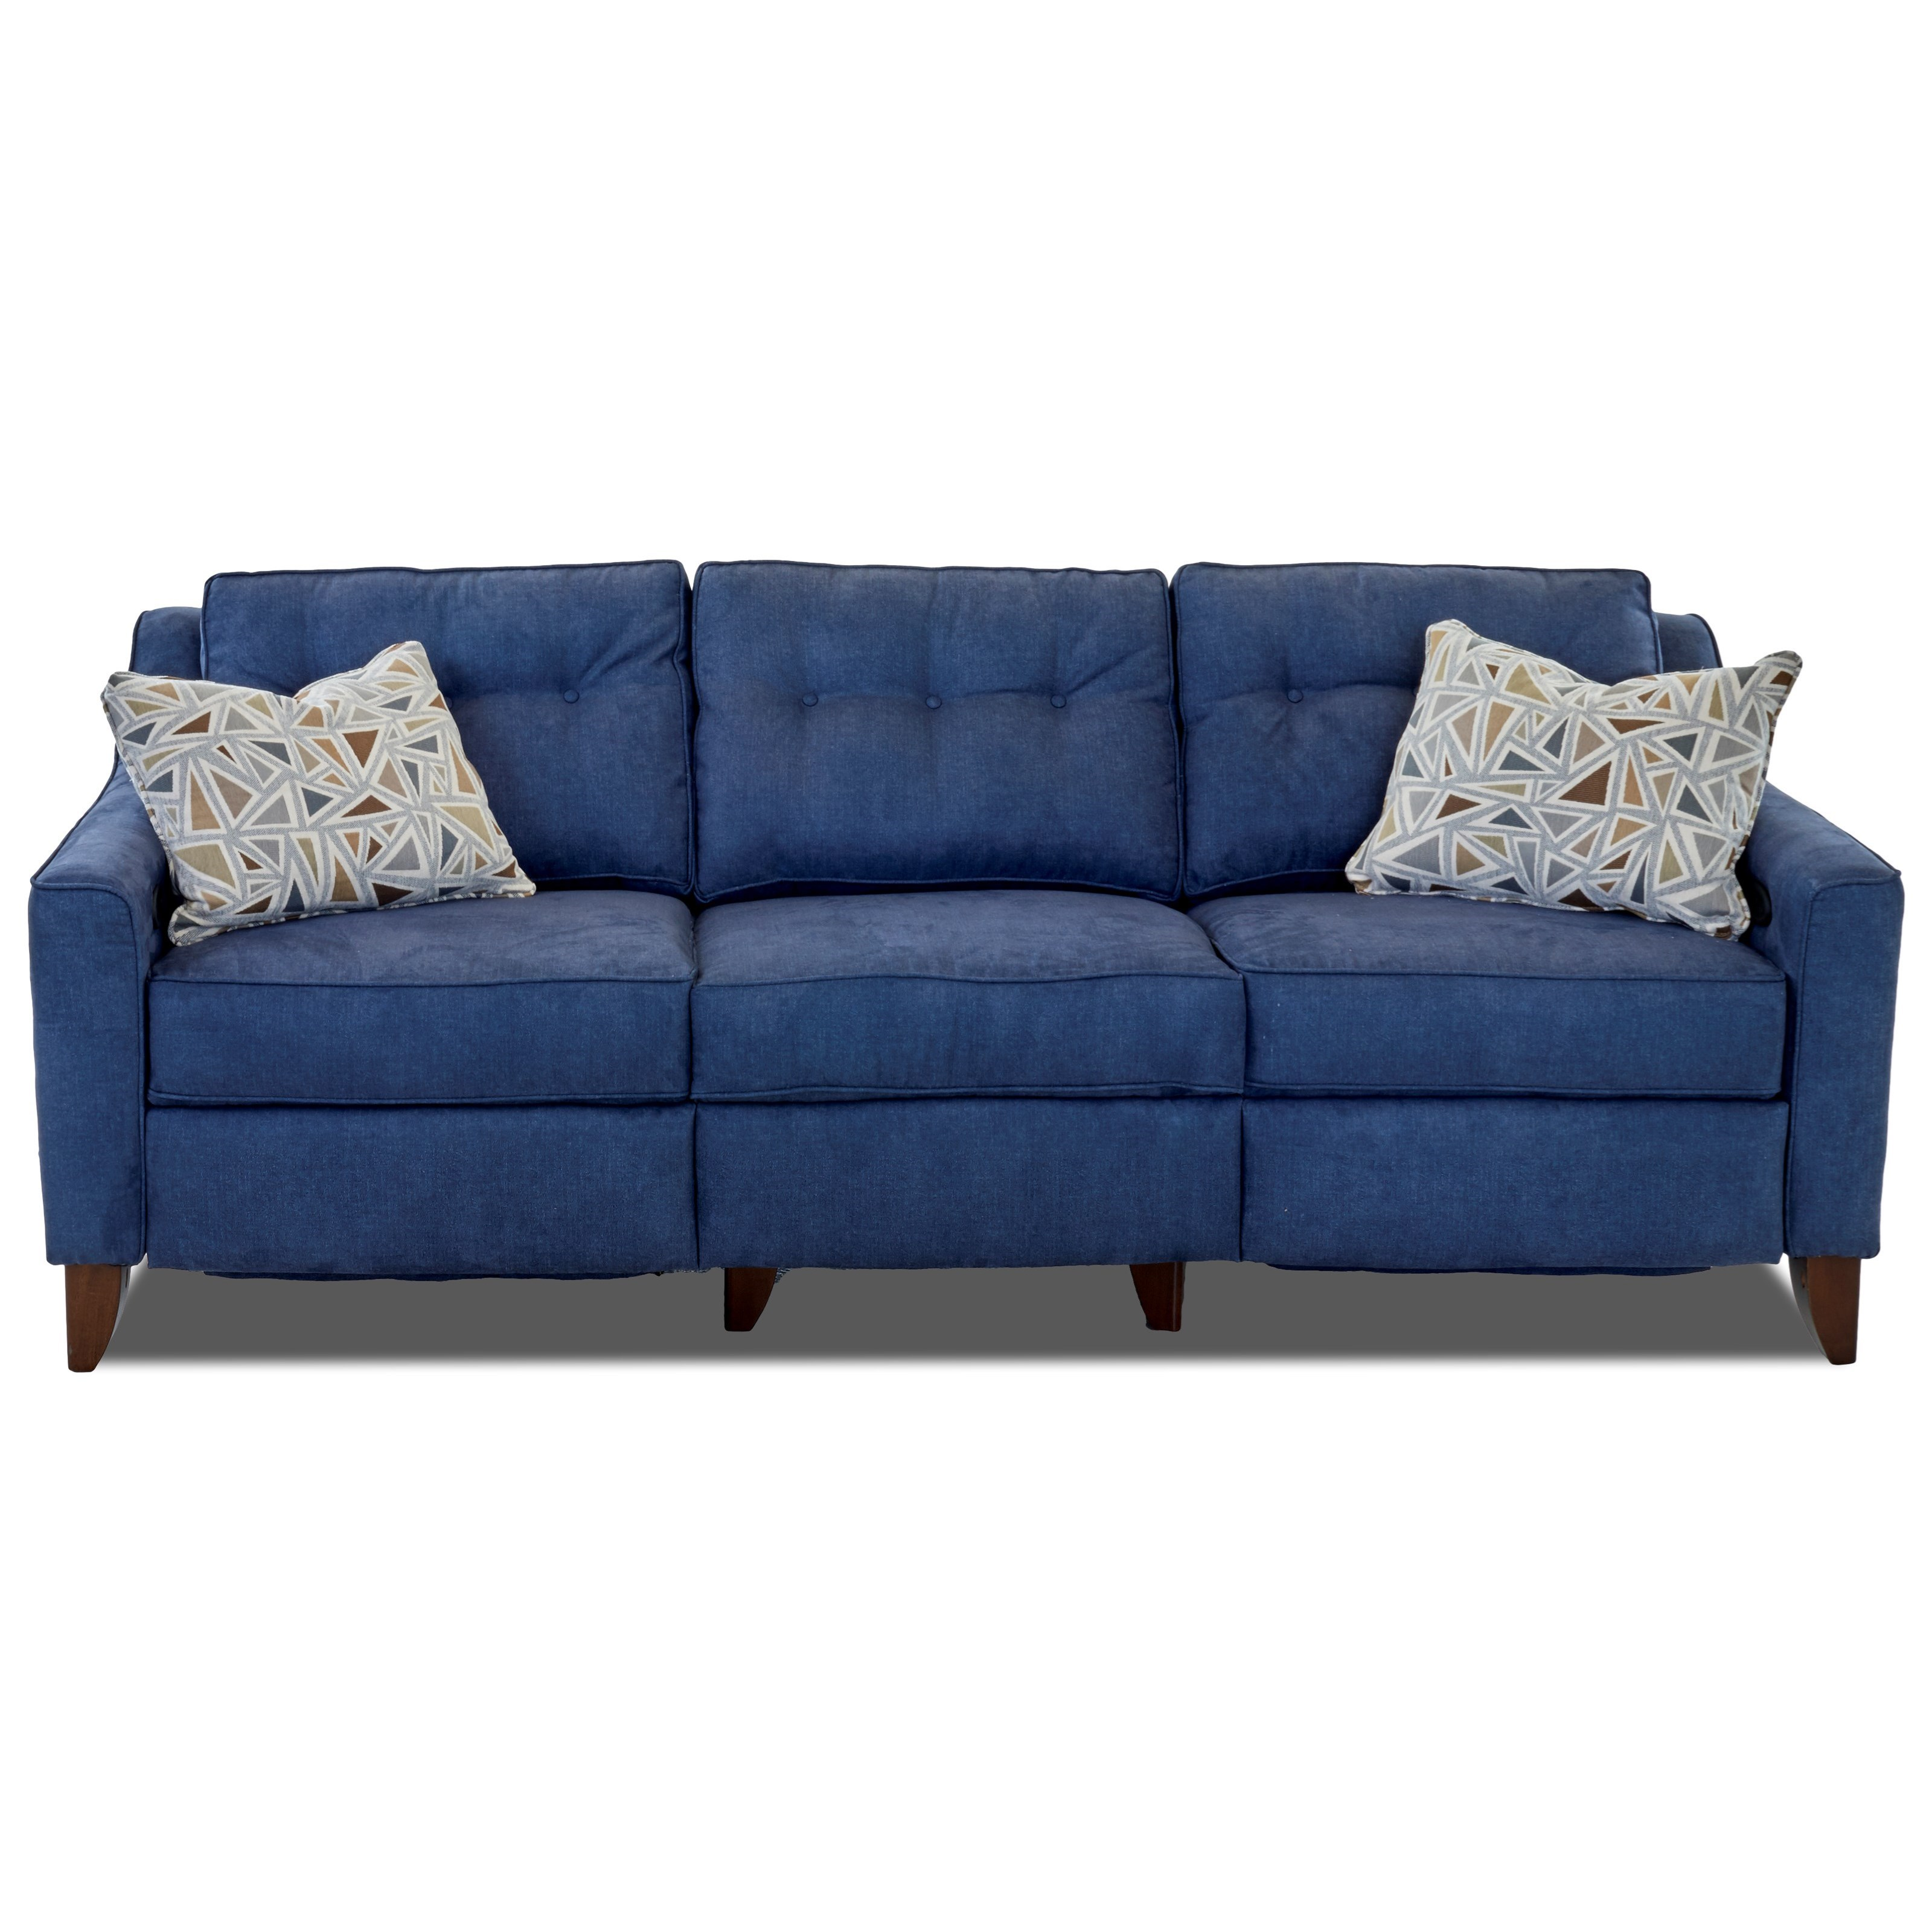 Audrina Power Reclining Sofa by Klaussner at Northeast Factory Direct